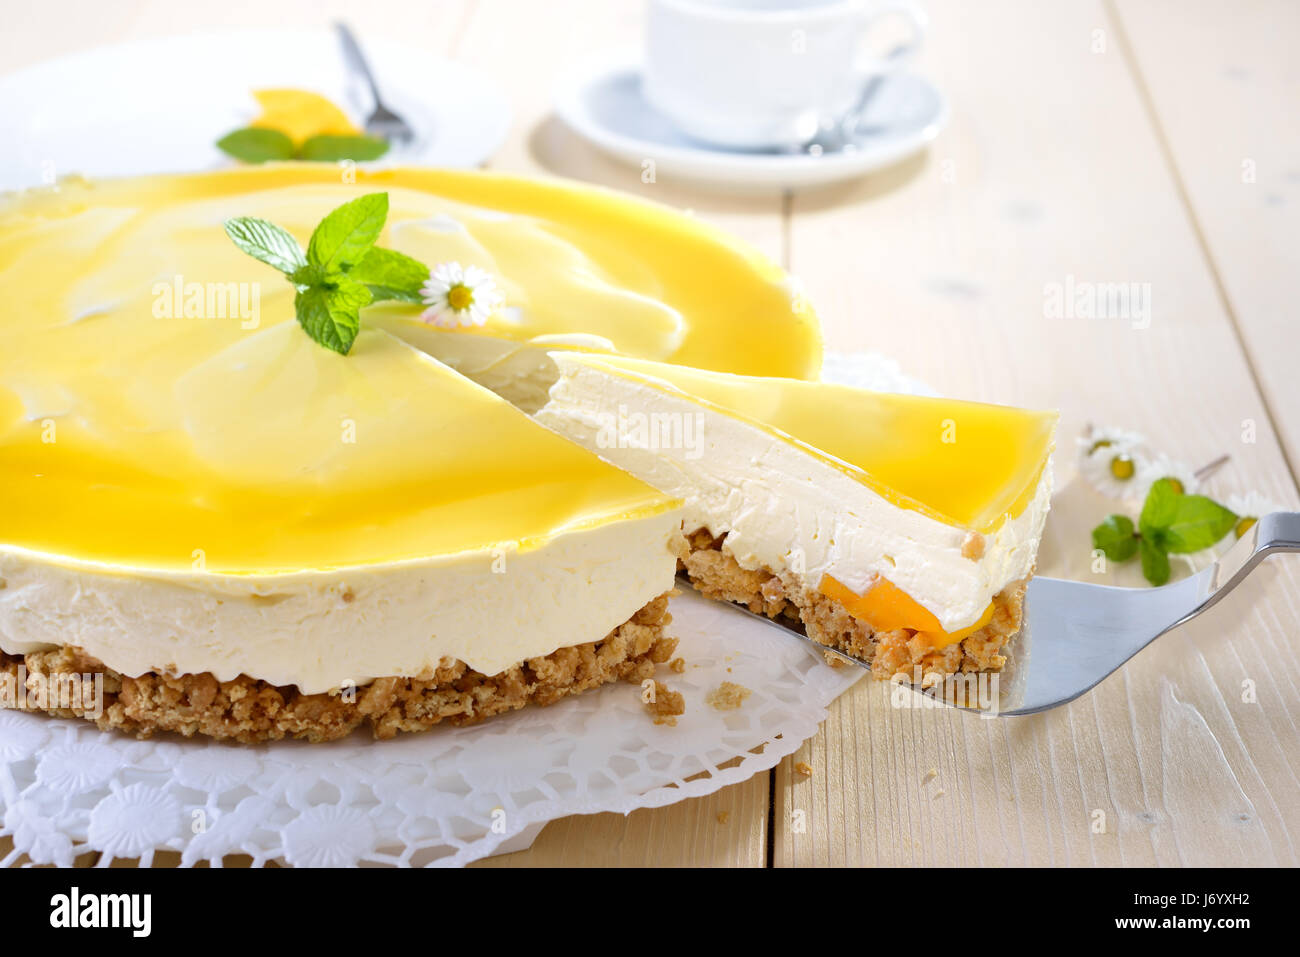 Fresh cheesecake with mango fruit and glaze, the flan case made of cookie crumbs - Stock Image